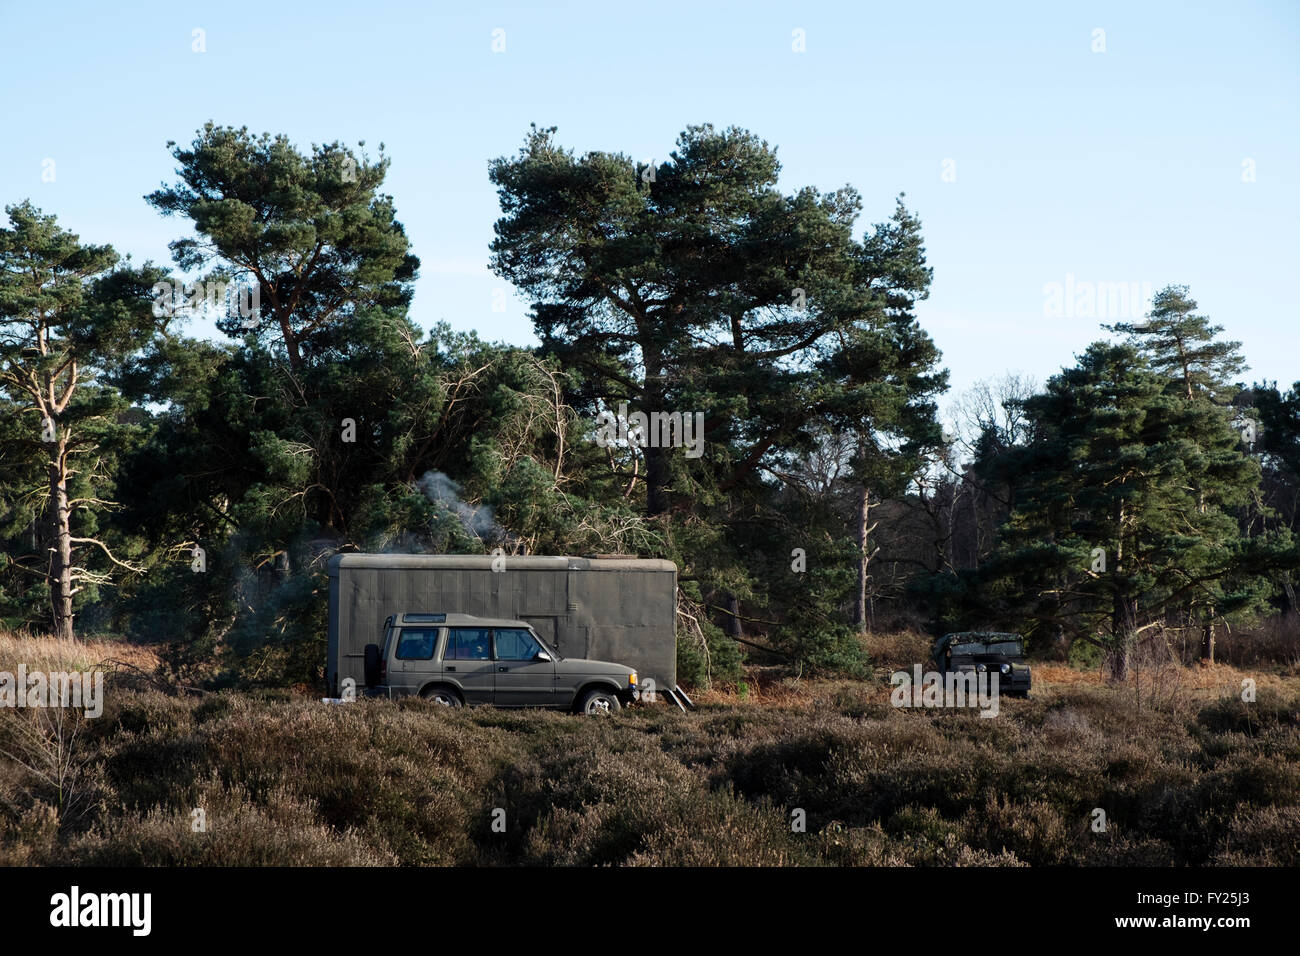 New age traveller, Sutton Heath, Suffolk, UK. - Stock Image